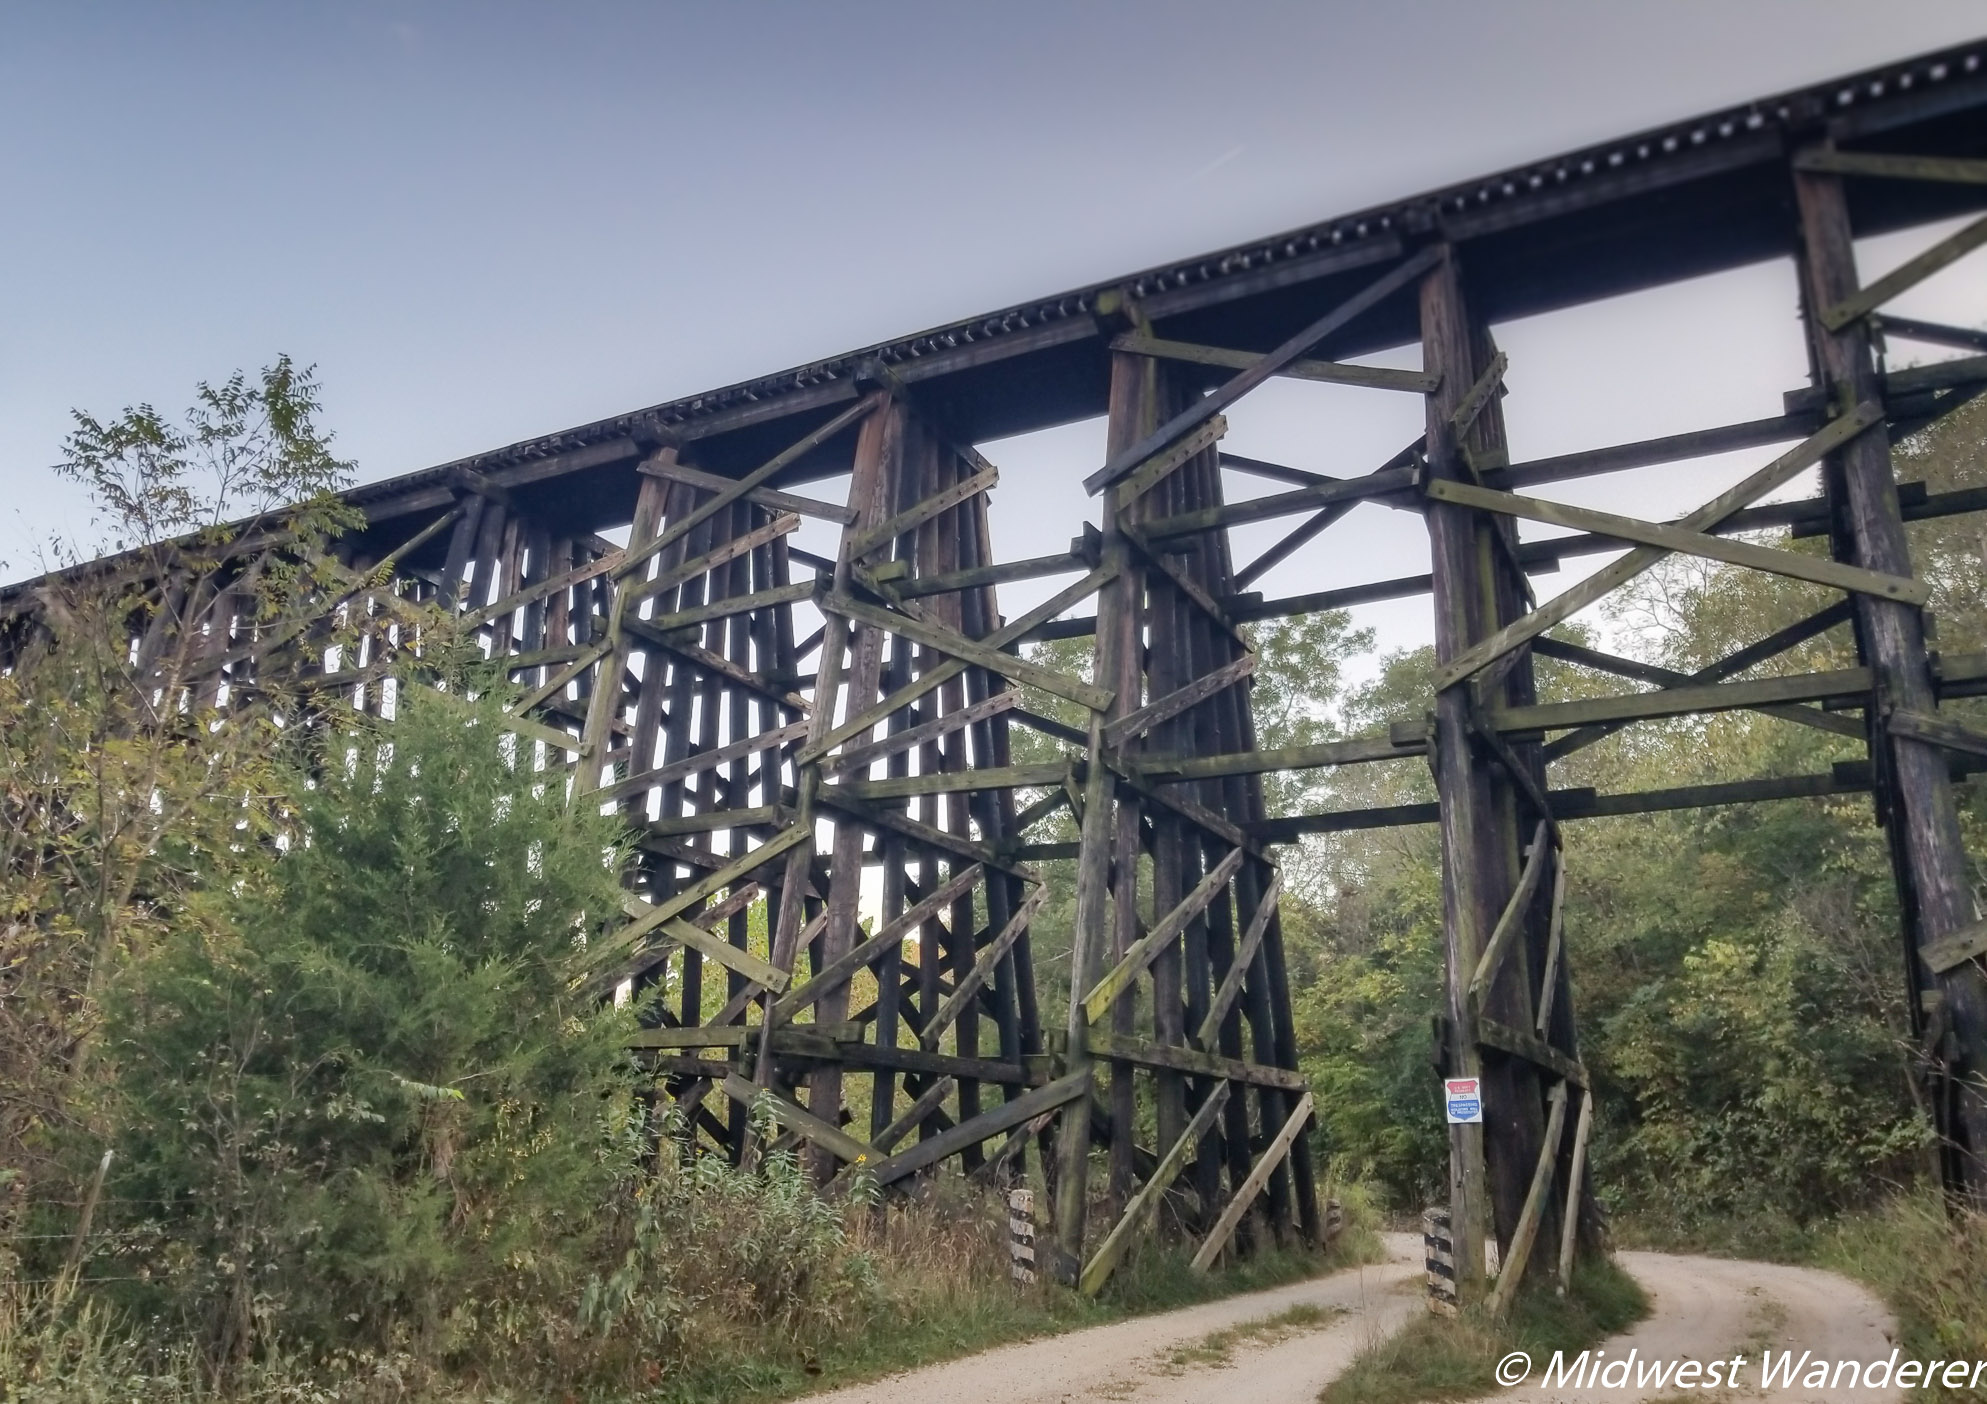 Route 66 through Pulaski County - trestle bridge